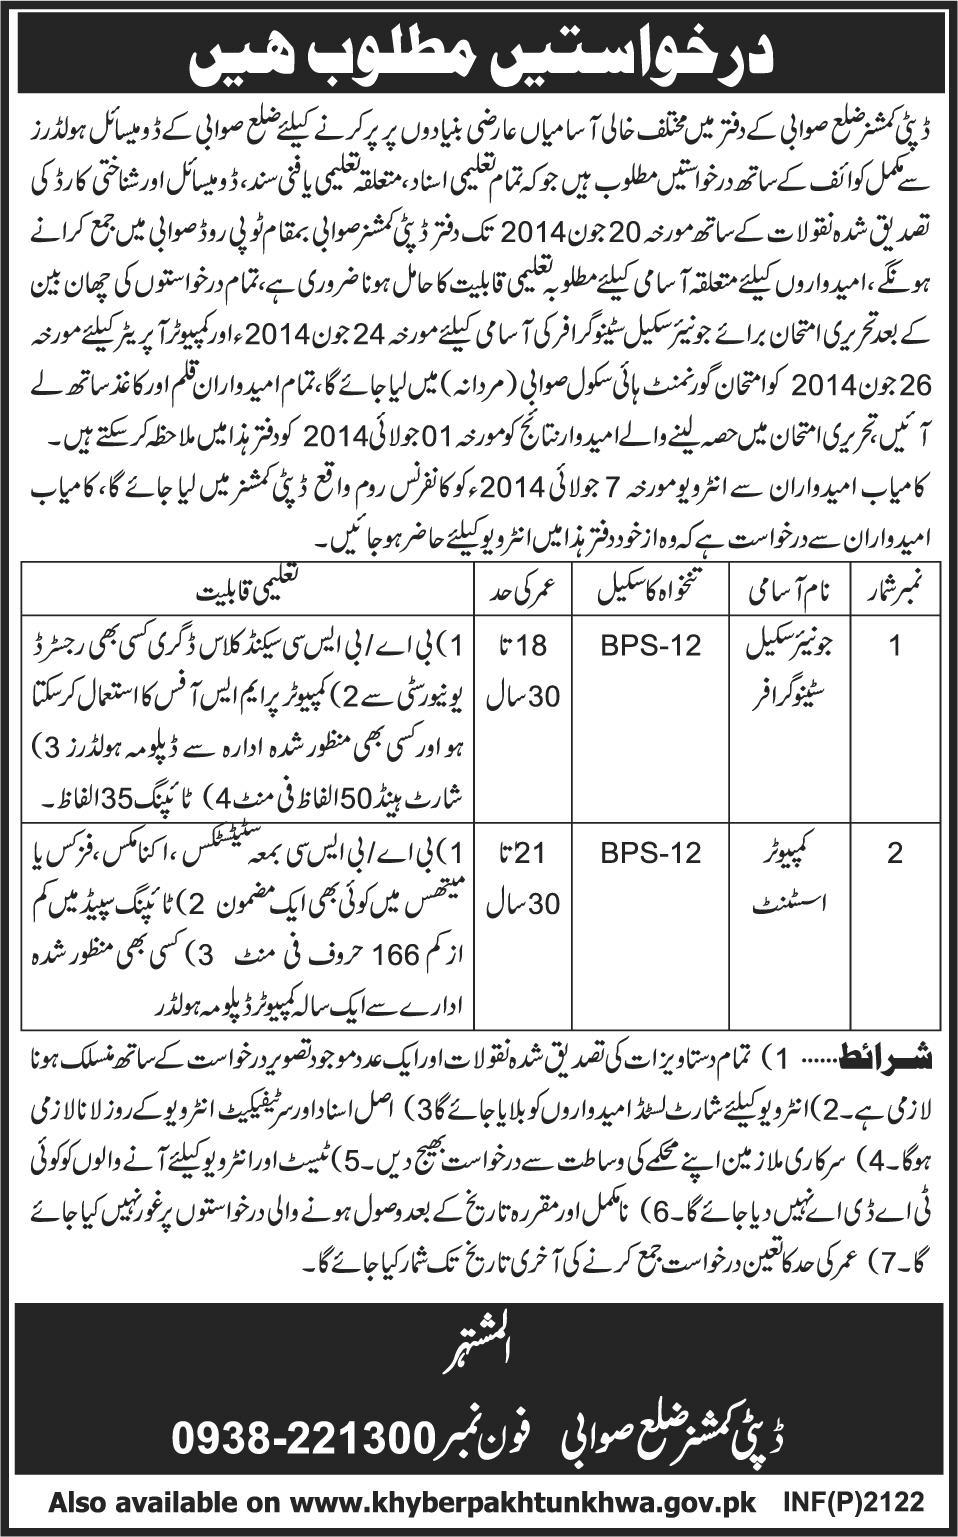 Junior Scale Stenographer & Computer Assistant Jobs in Swabi  KPK 2014 May / June in Office of Deputy Commissioner